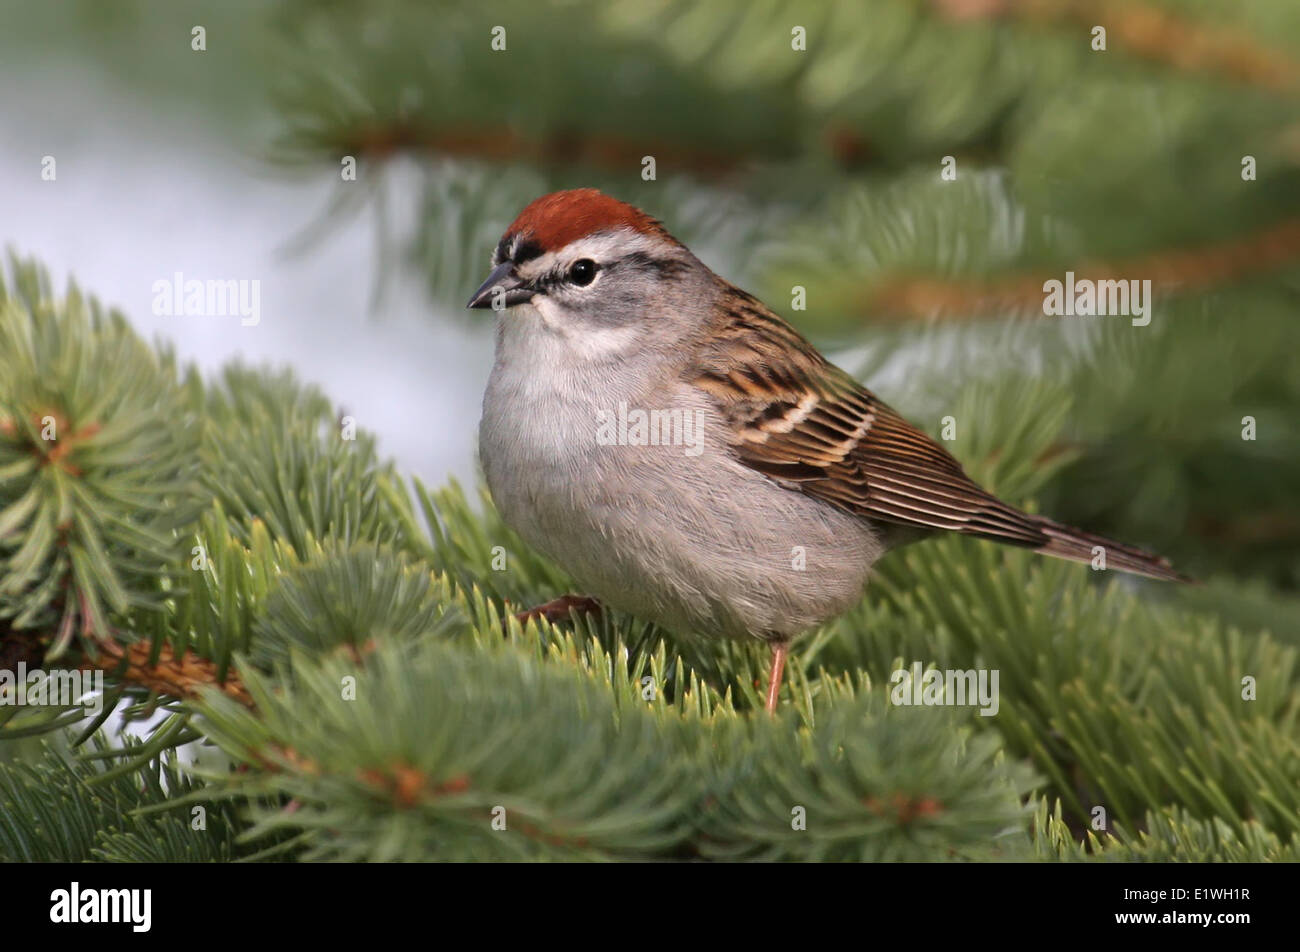 A Chipping Sparrow, Spizella passerina, perched in a spruce tree in Saskatchewan, Canada Stock Photo